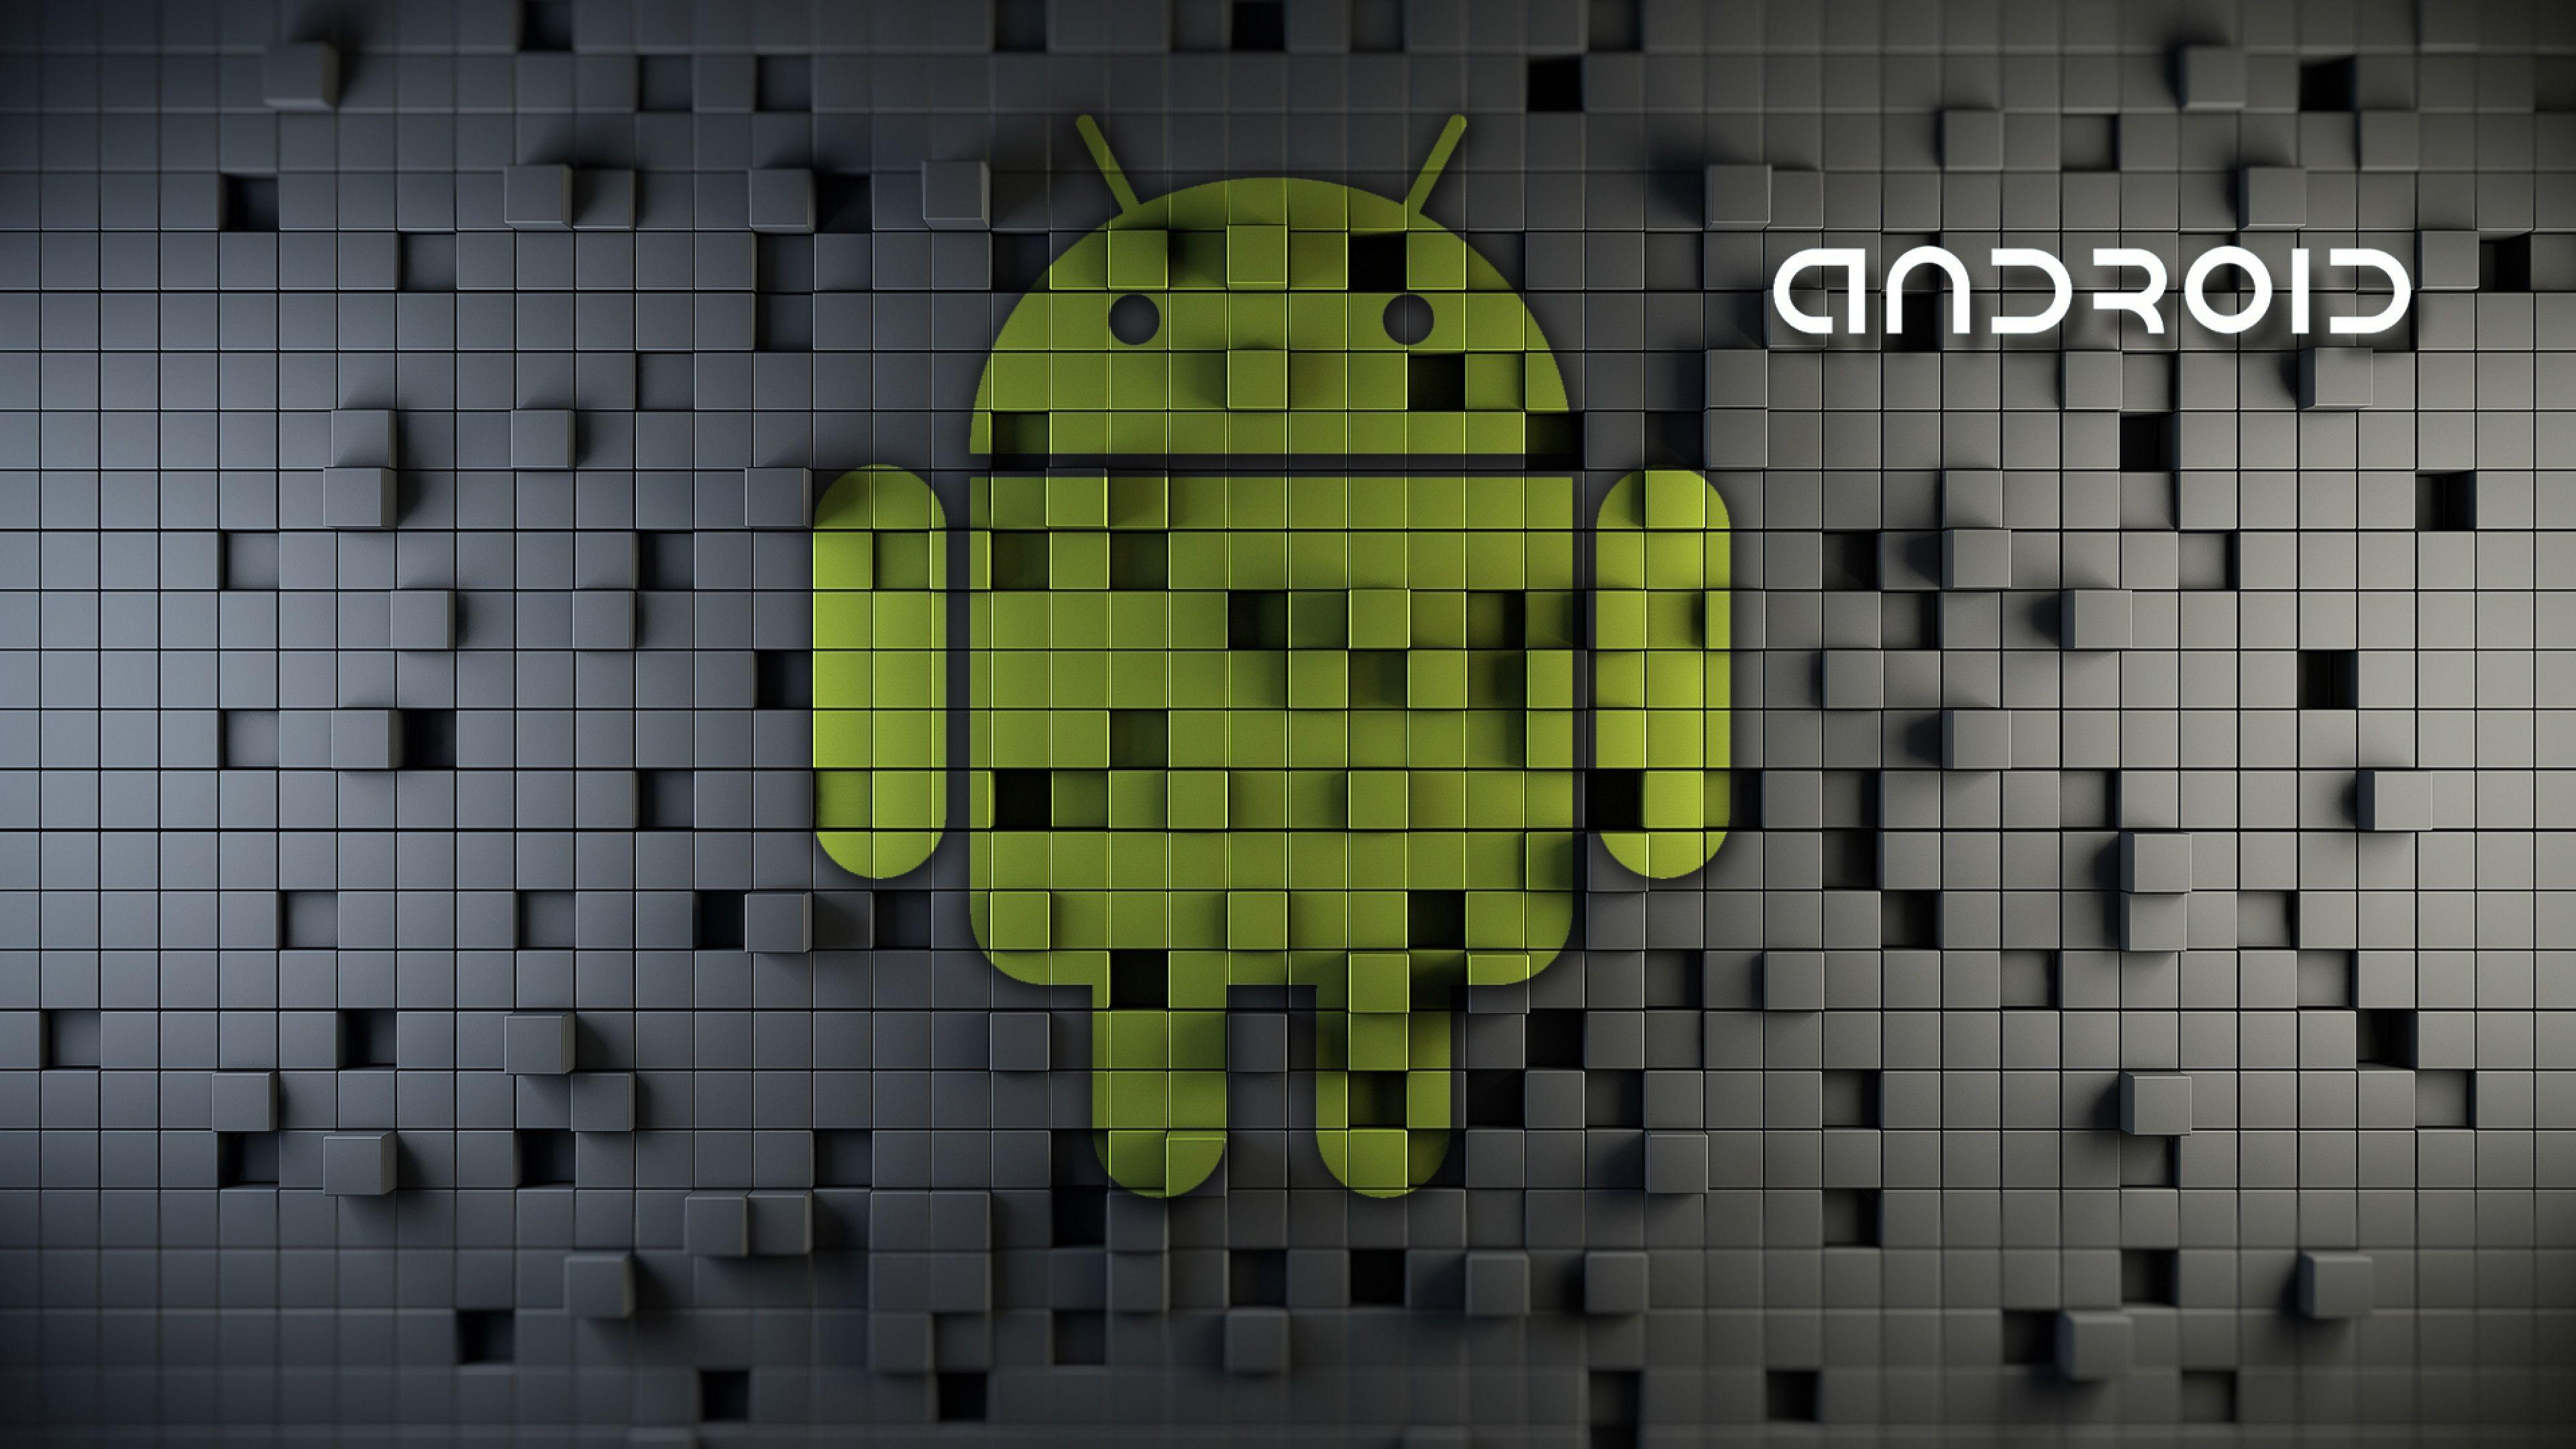 Download Android Wallpapers 29B